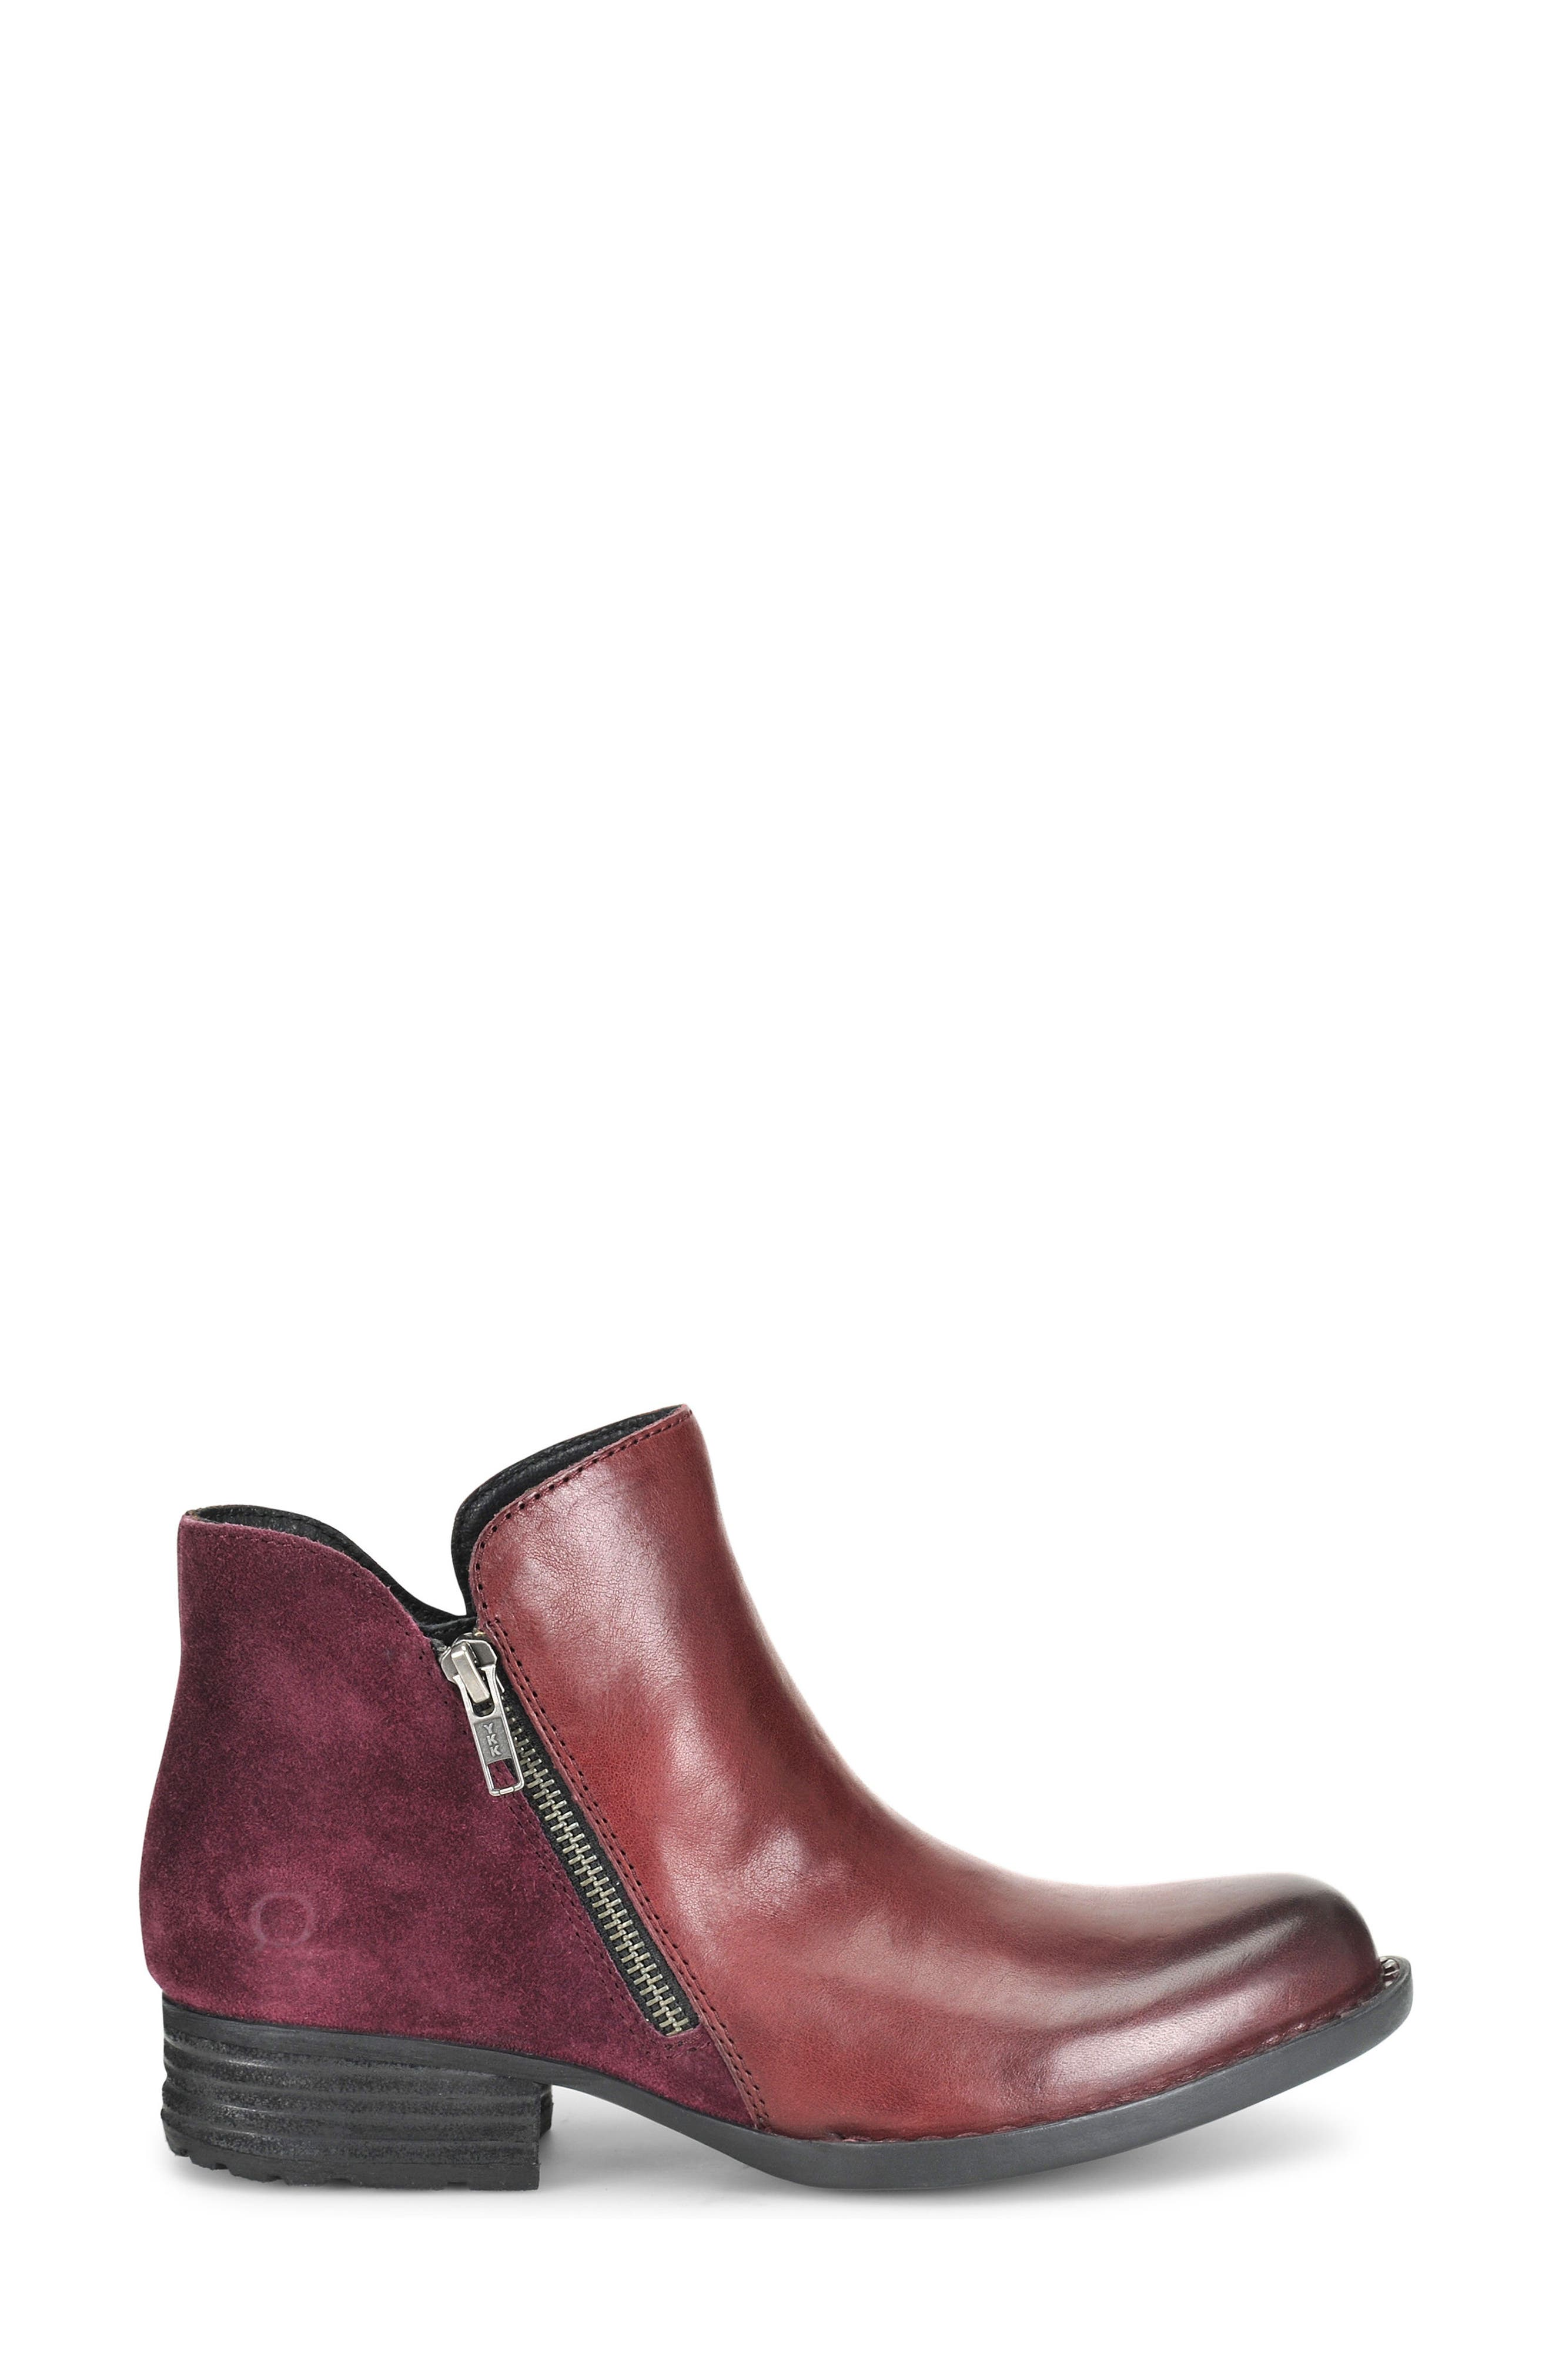 Keefe Bootie,                             Alternate thumbnail 3, color,                             Burgundy/ Purple Combo